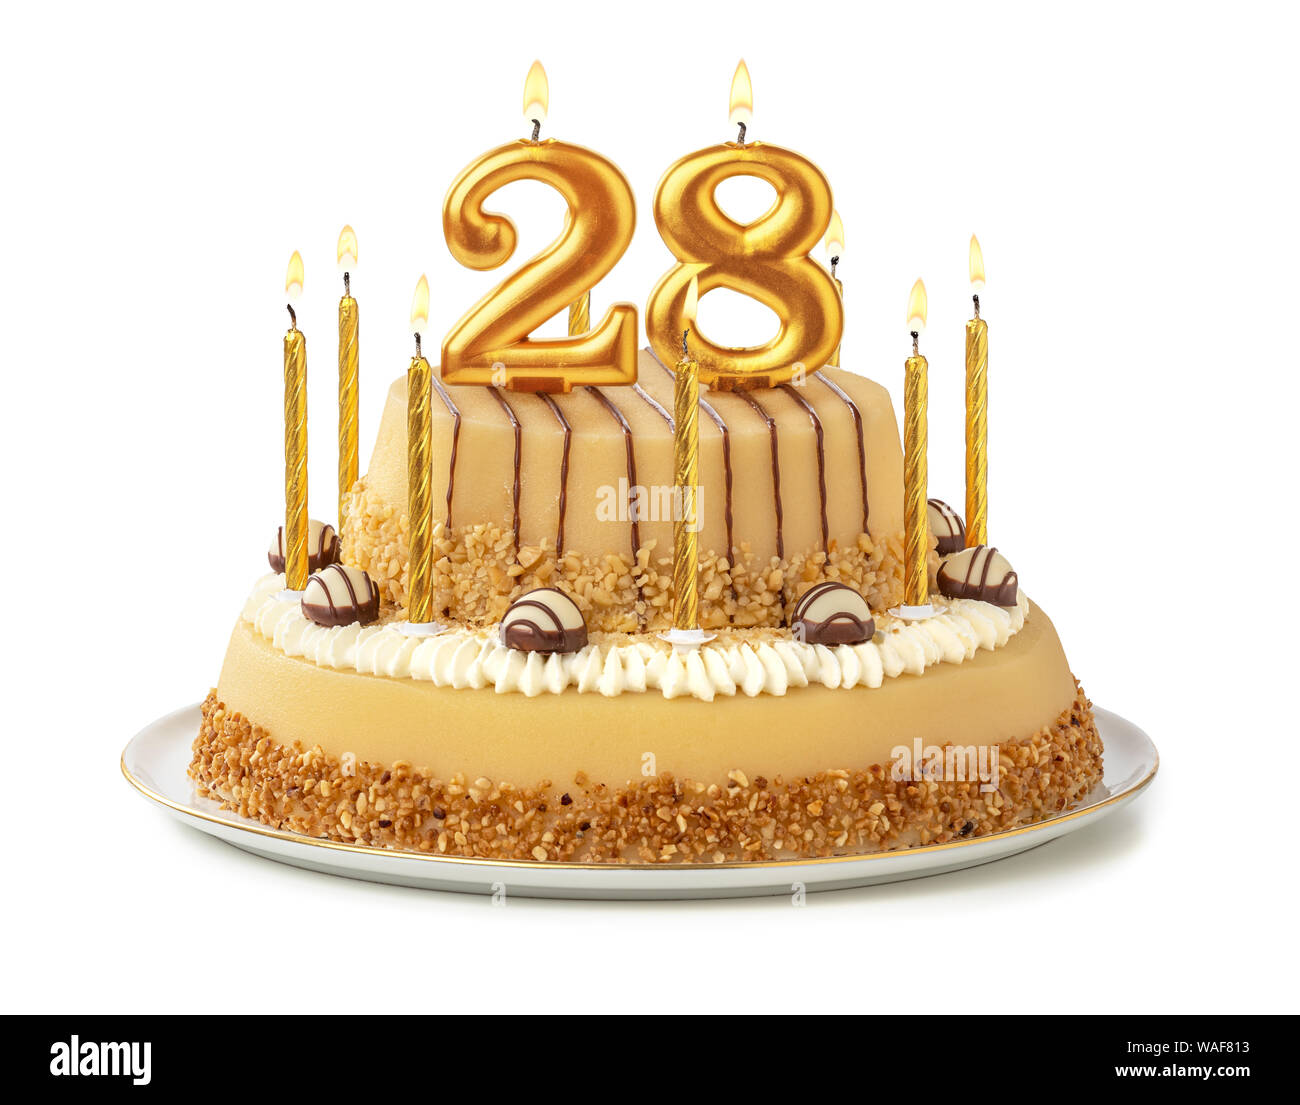 Sensational Festive Cake With Golden Candles Number 28 Stock Photo Personalised Birthday Cards Paralily Jamesorg